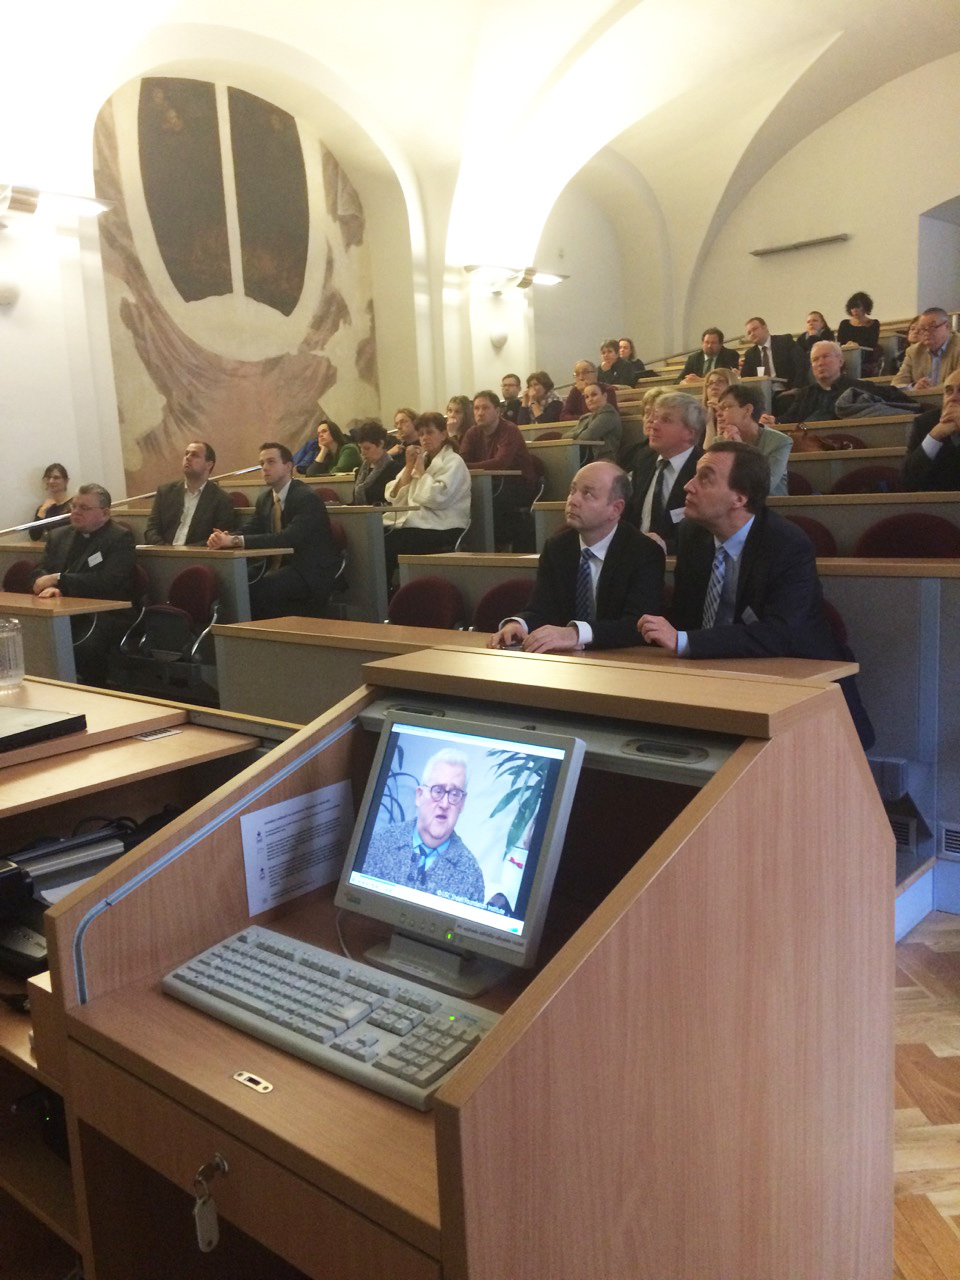 Prof. Jan Hajič, head of Insitute of Formal and Applied Linguistics at the MFF UK and Stephen D. Smith, USC Shoah Foundation executive director, watching a clip of testimony